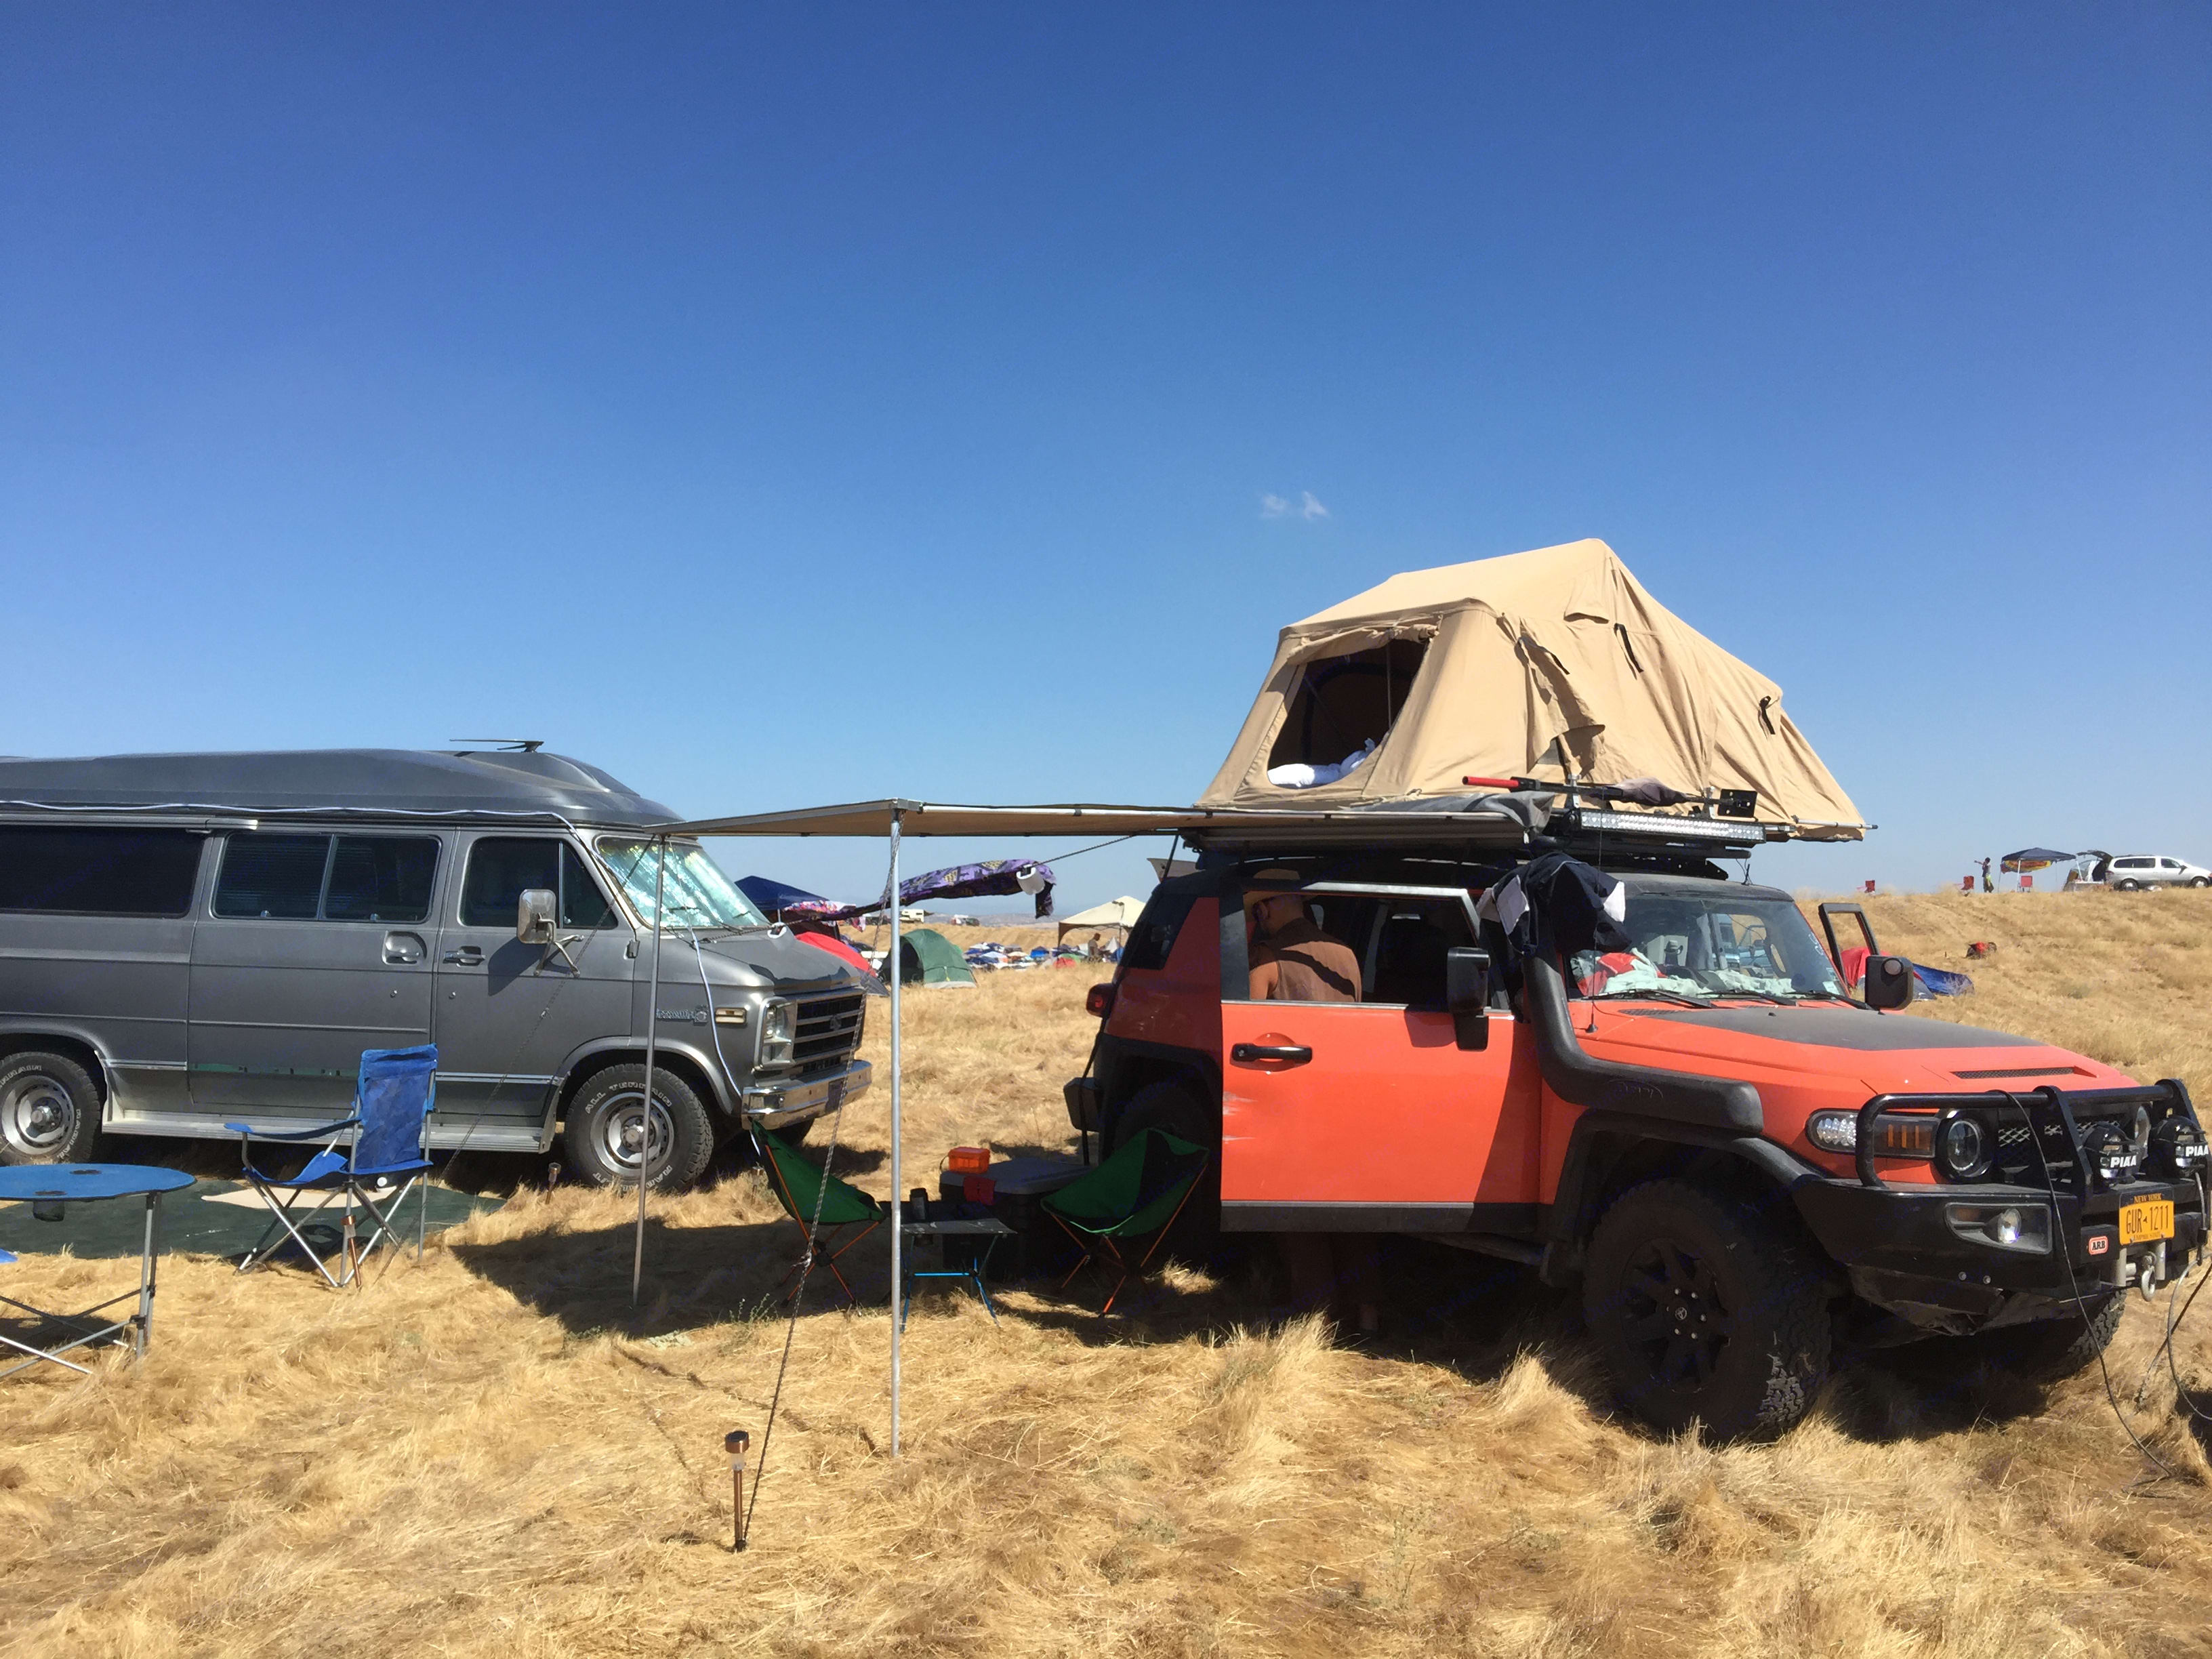 Sleeps 2 on the roof, the awning can be set up with walls and a space to sleep another 3. Ultimate 4x4 adventure vehicle.. Toyota FJ Cruiser 2014